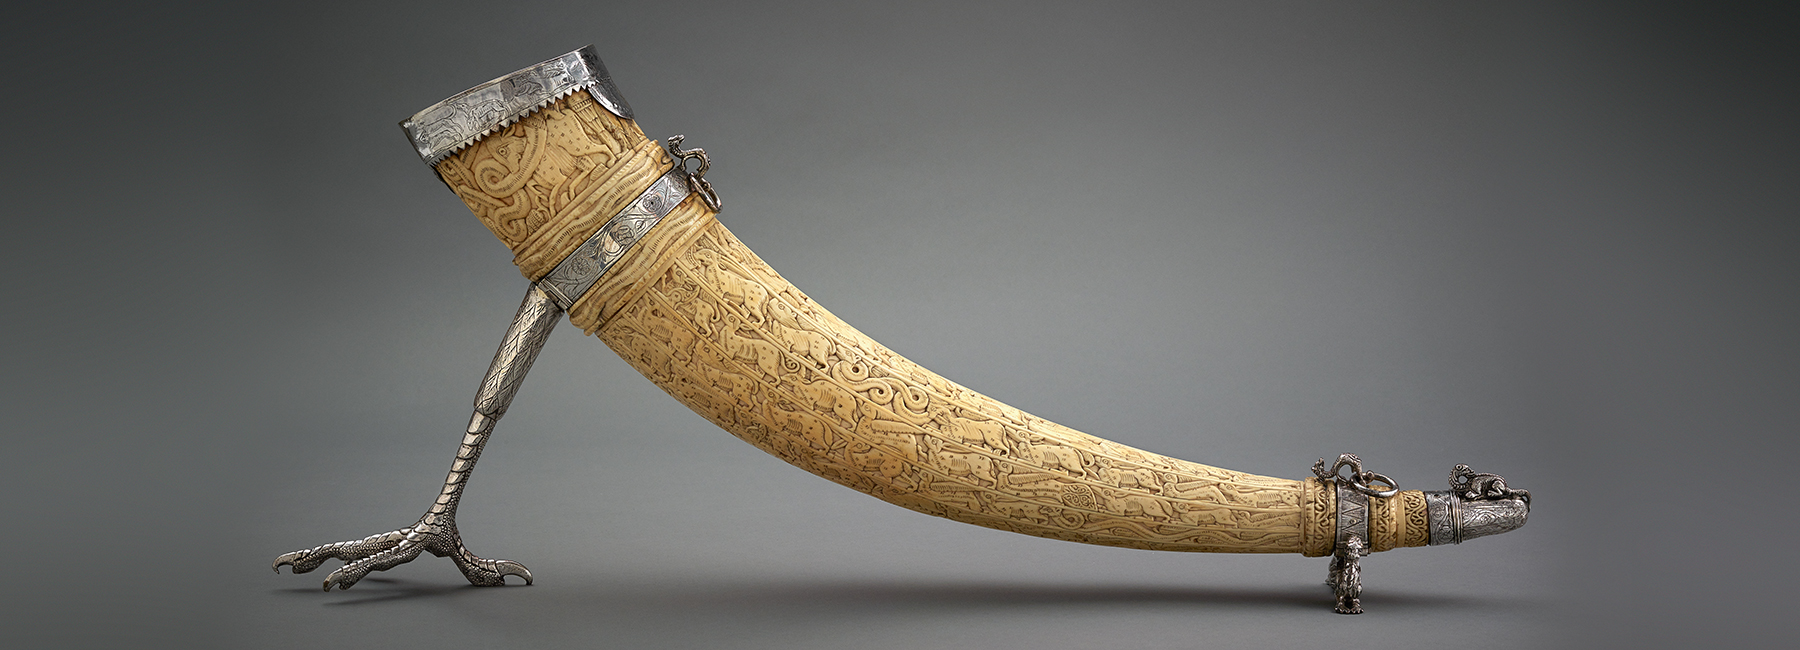 the Fatimids's exhibition at AKM